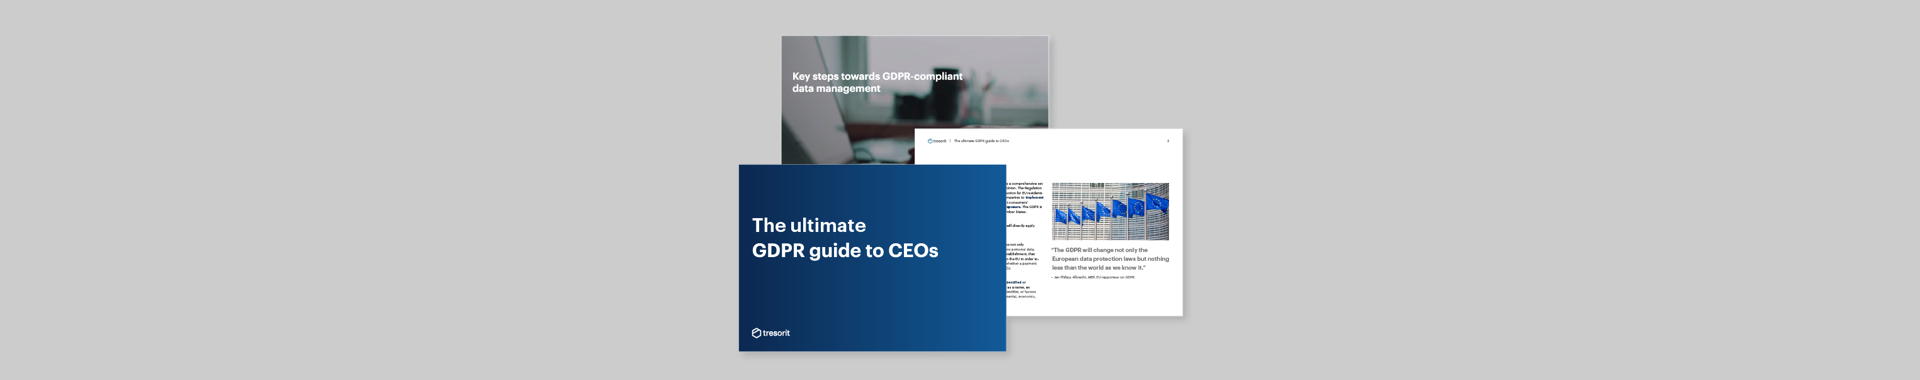 The ultimate GDPR guide to CEOs